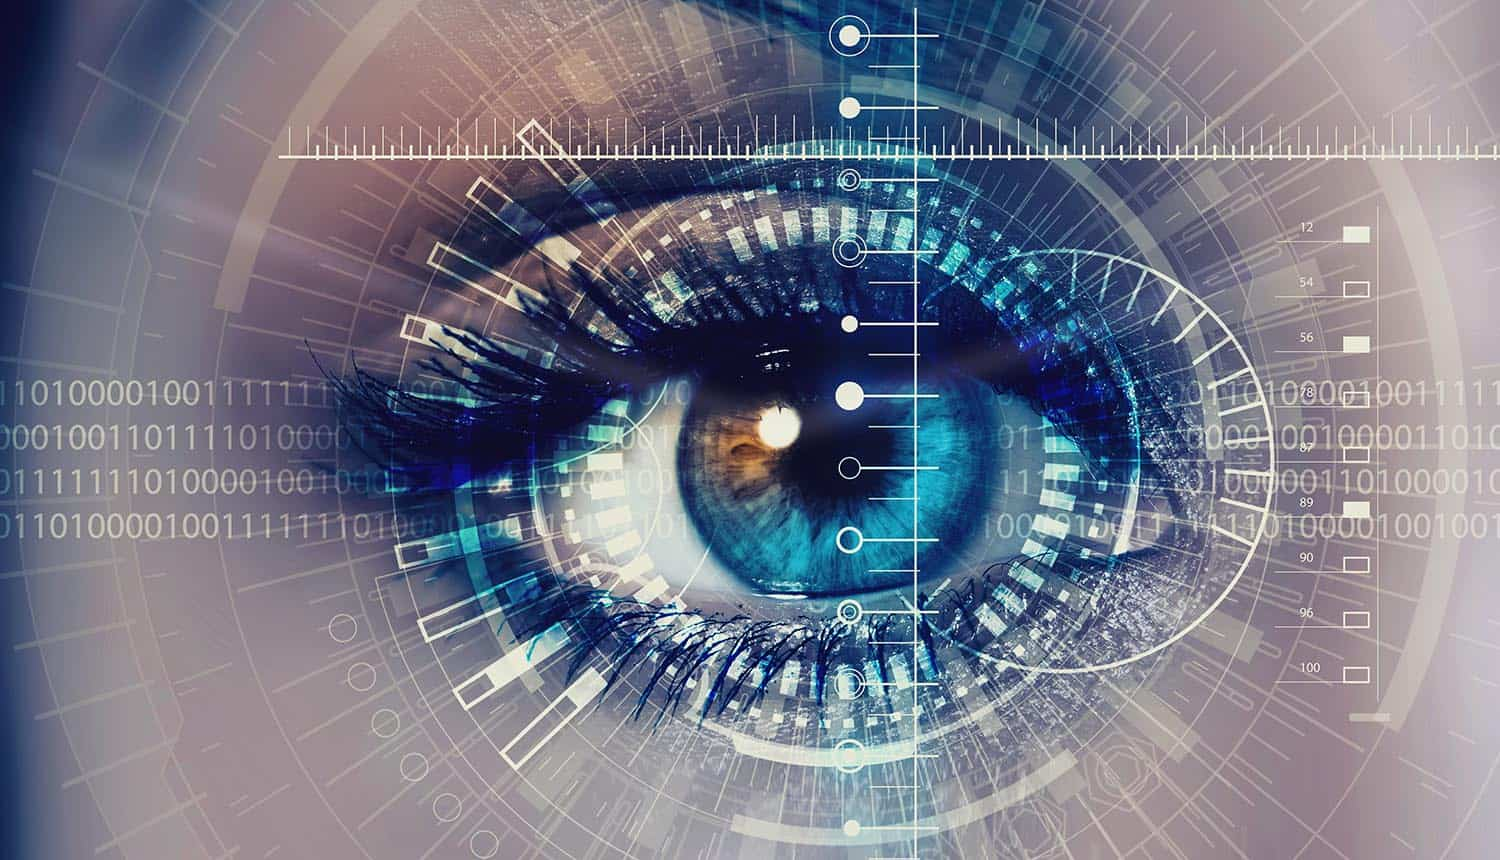 Image of eye being scanned as a means of biometric identification